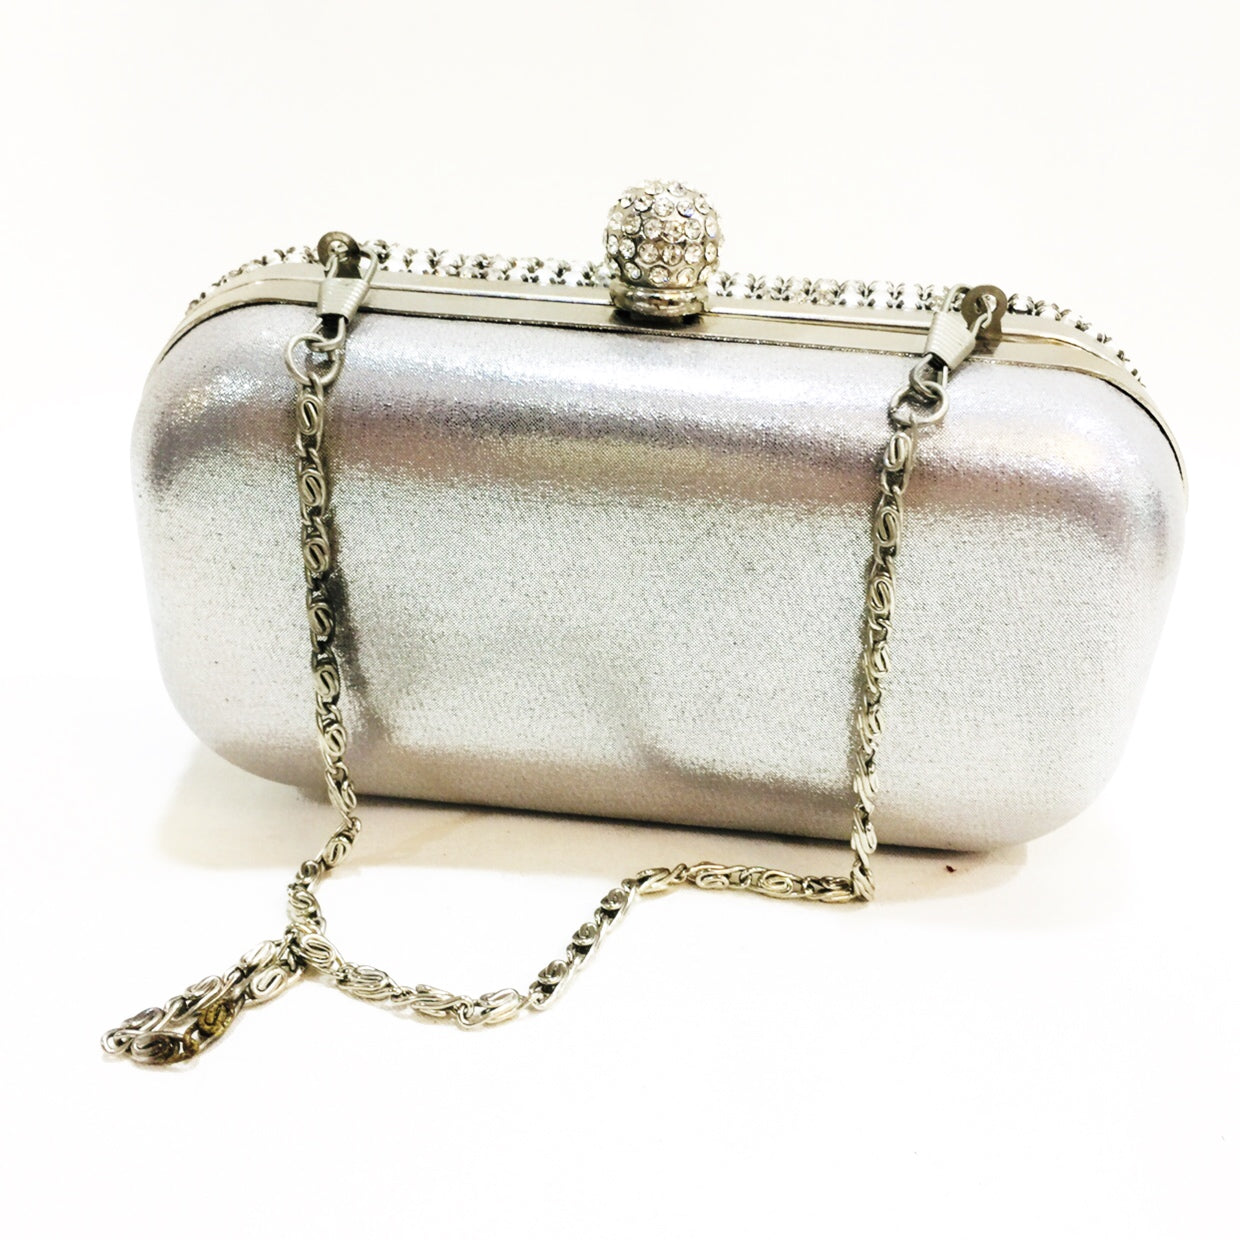 Sassy Spirit Clutch Bag